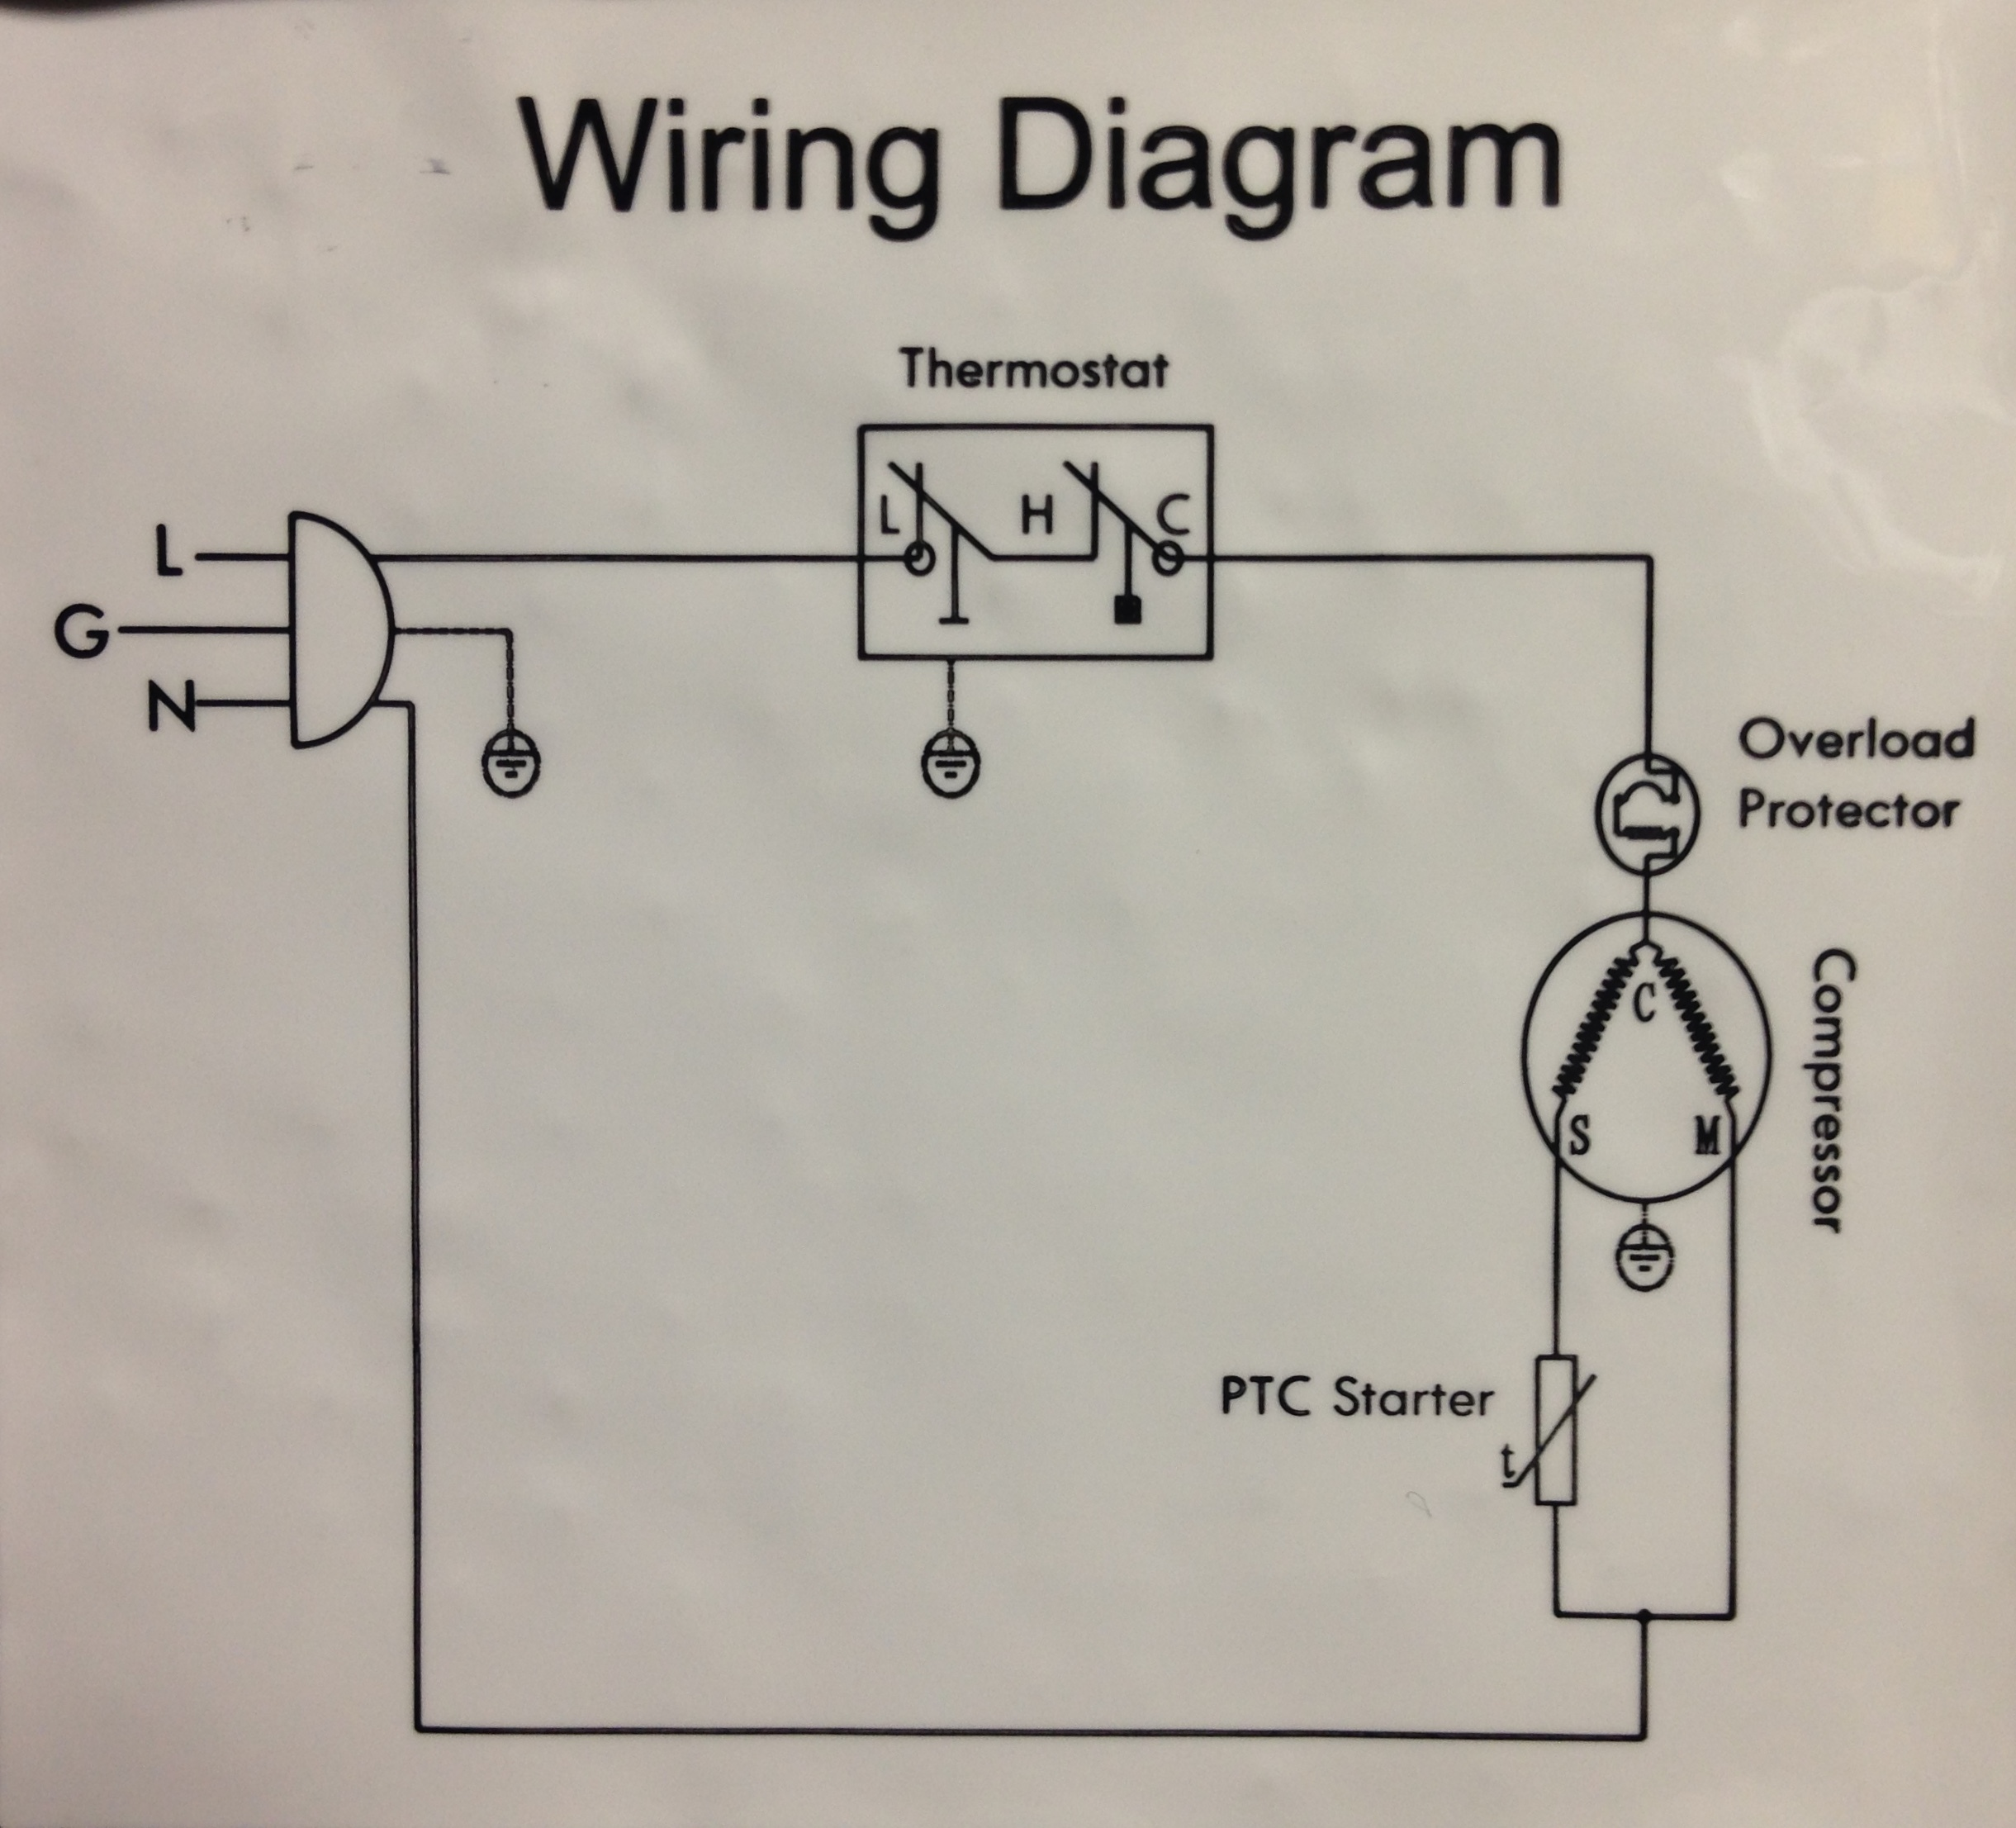 ptc wiring diagram data wiring diagram schematic ct wiring diagram 20 ptc wiring diagram pictures and [ 2441 x 2213 Pixel ]